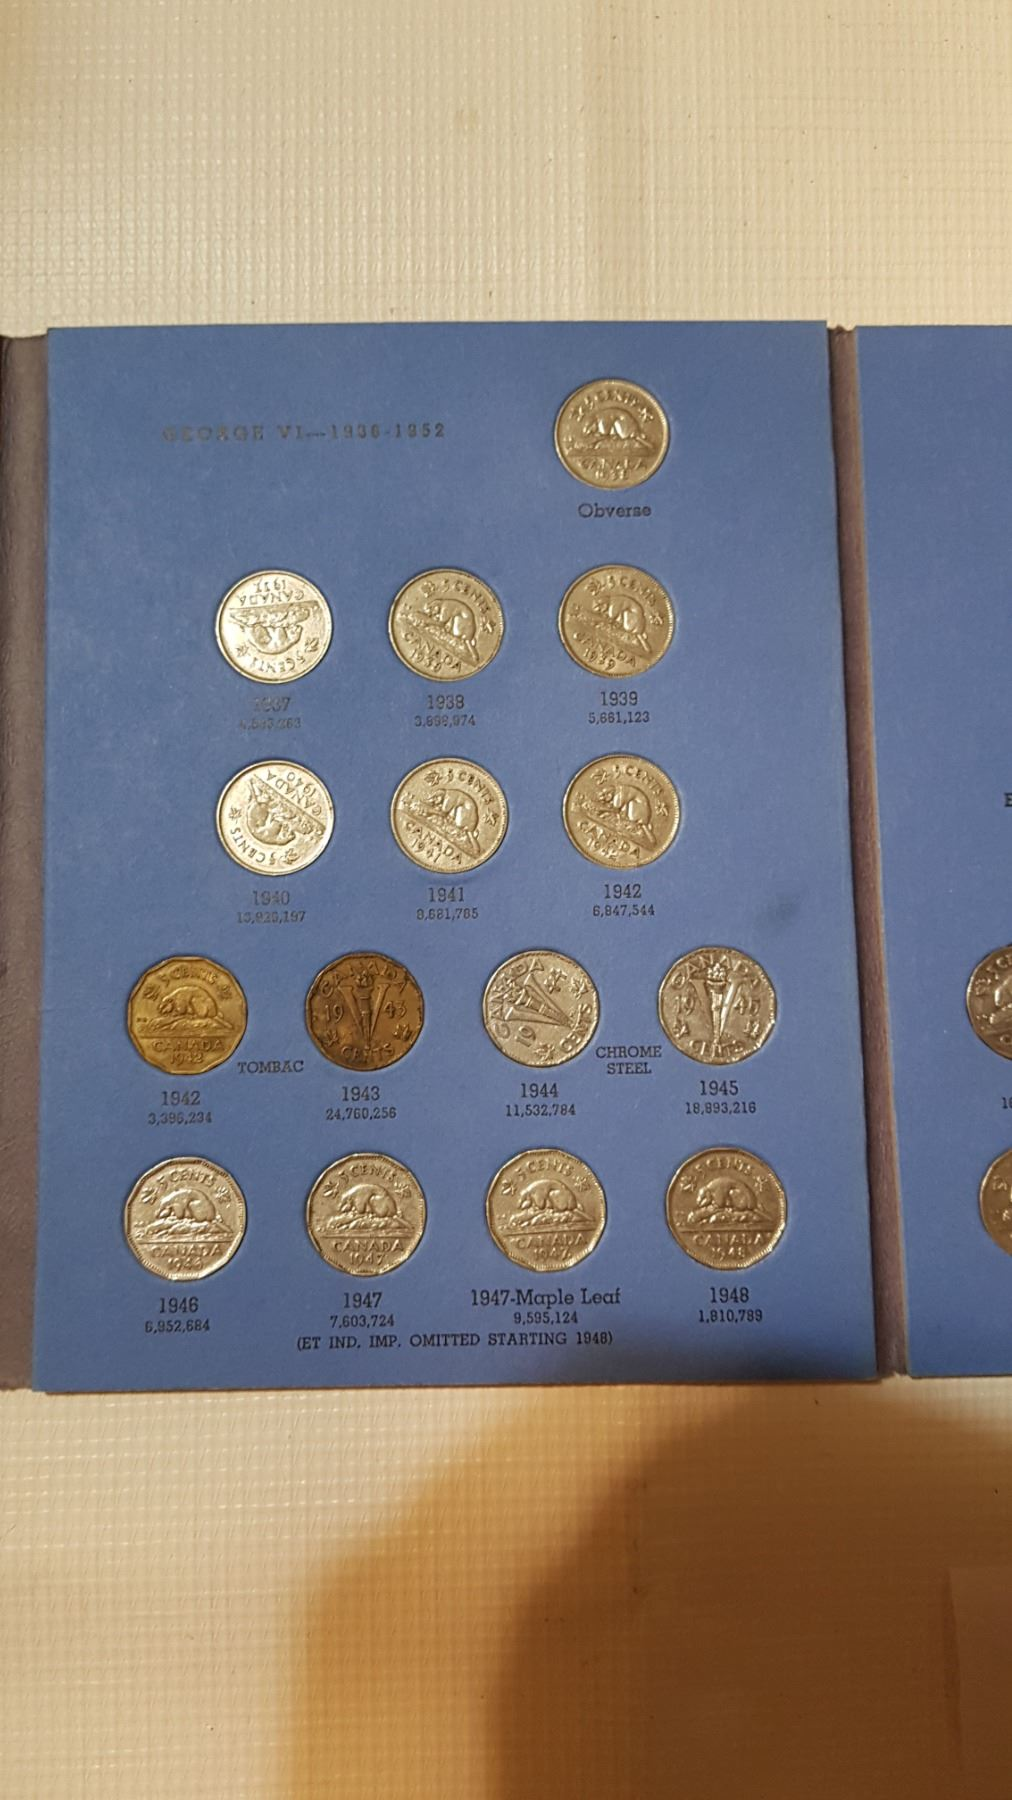 1922-1960 5 CENT COIN SET, MISSING 1925 AND 1926 FAR 6, INCLUDES 1926 NEAR